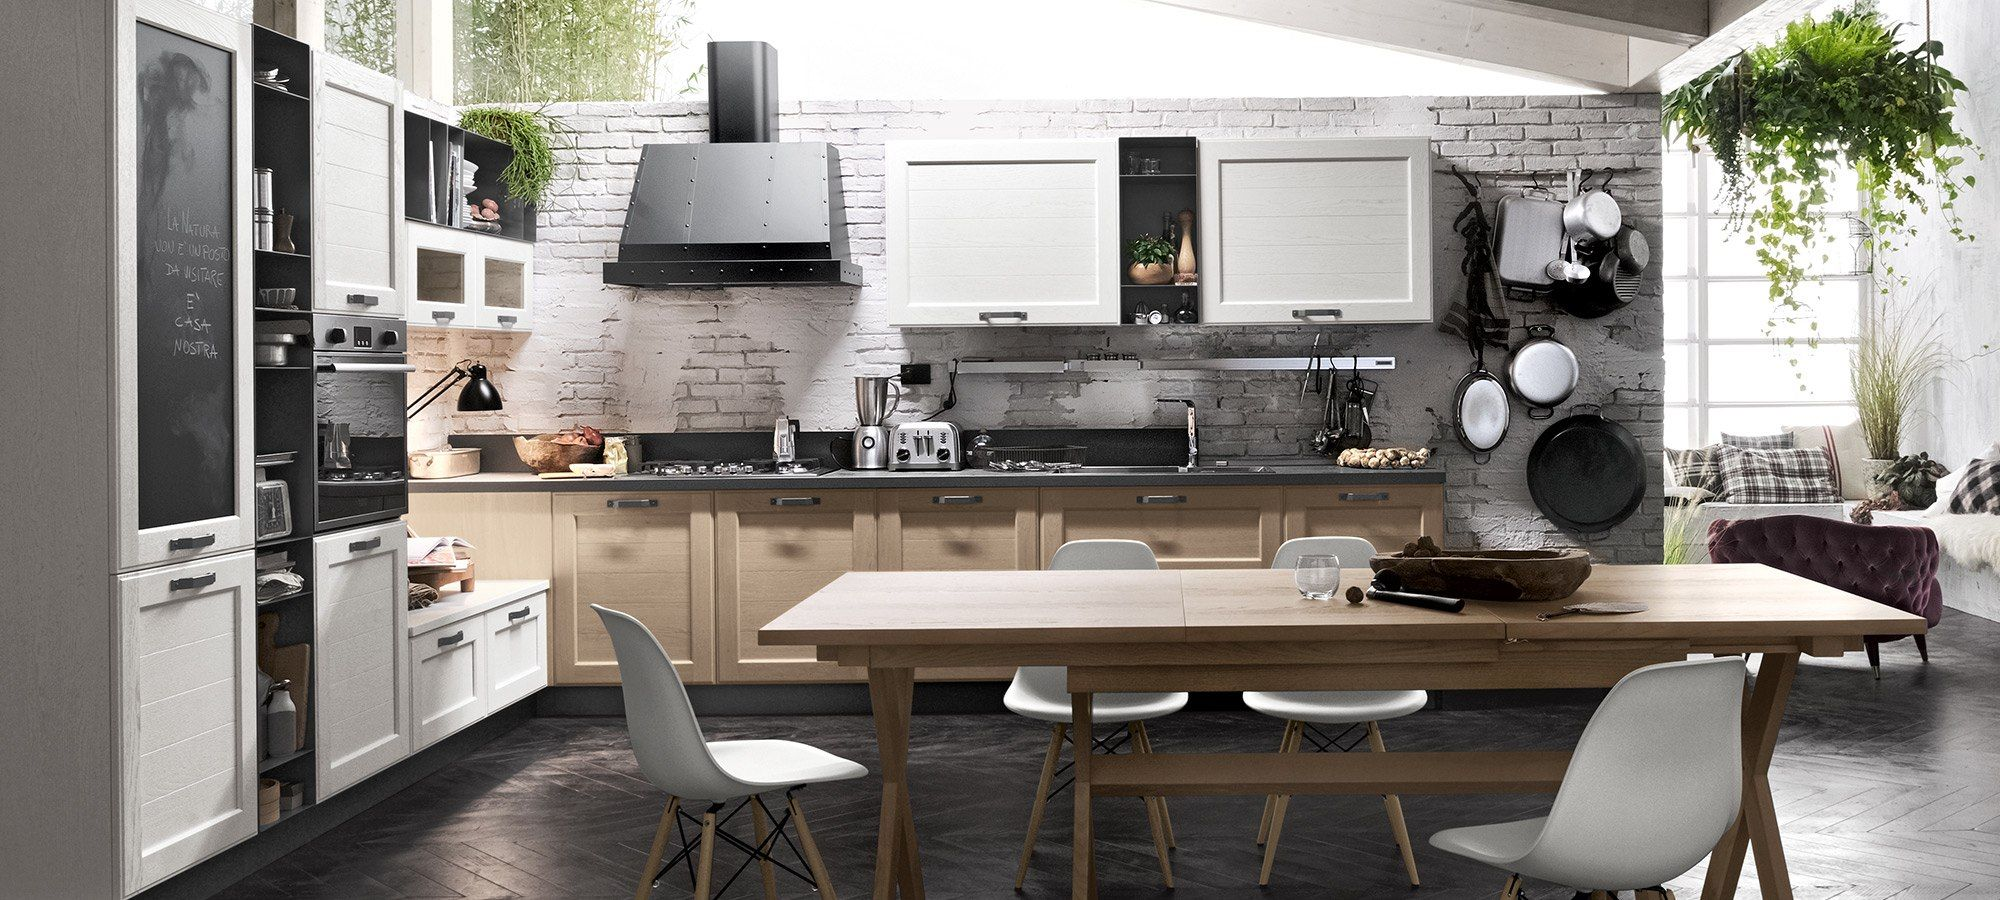 Modern kitchens Cambridge Get the unique ideas for to create a unique look   Visit Belvisi Italian furniture store online today  Call us at 01223. cucine moderne contemporanee stosa   modello cucina york 01